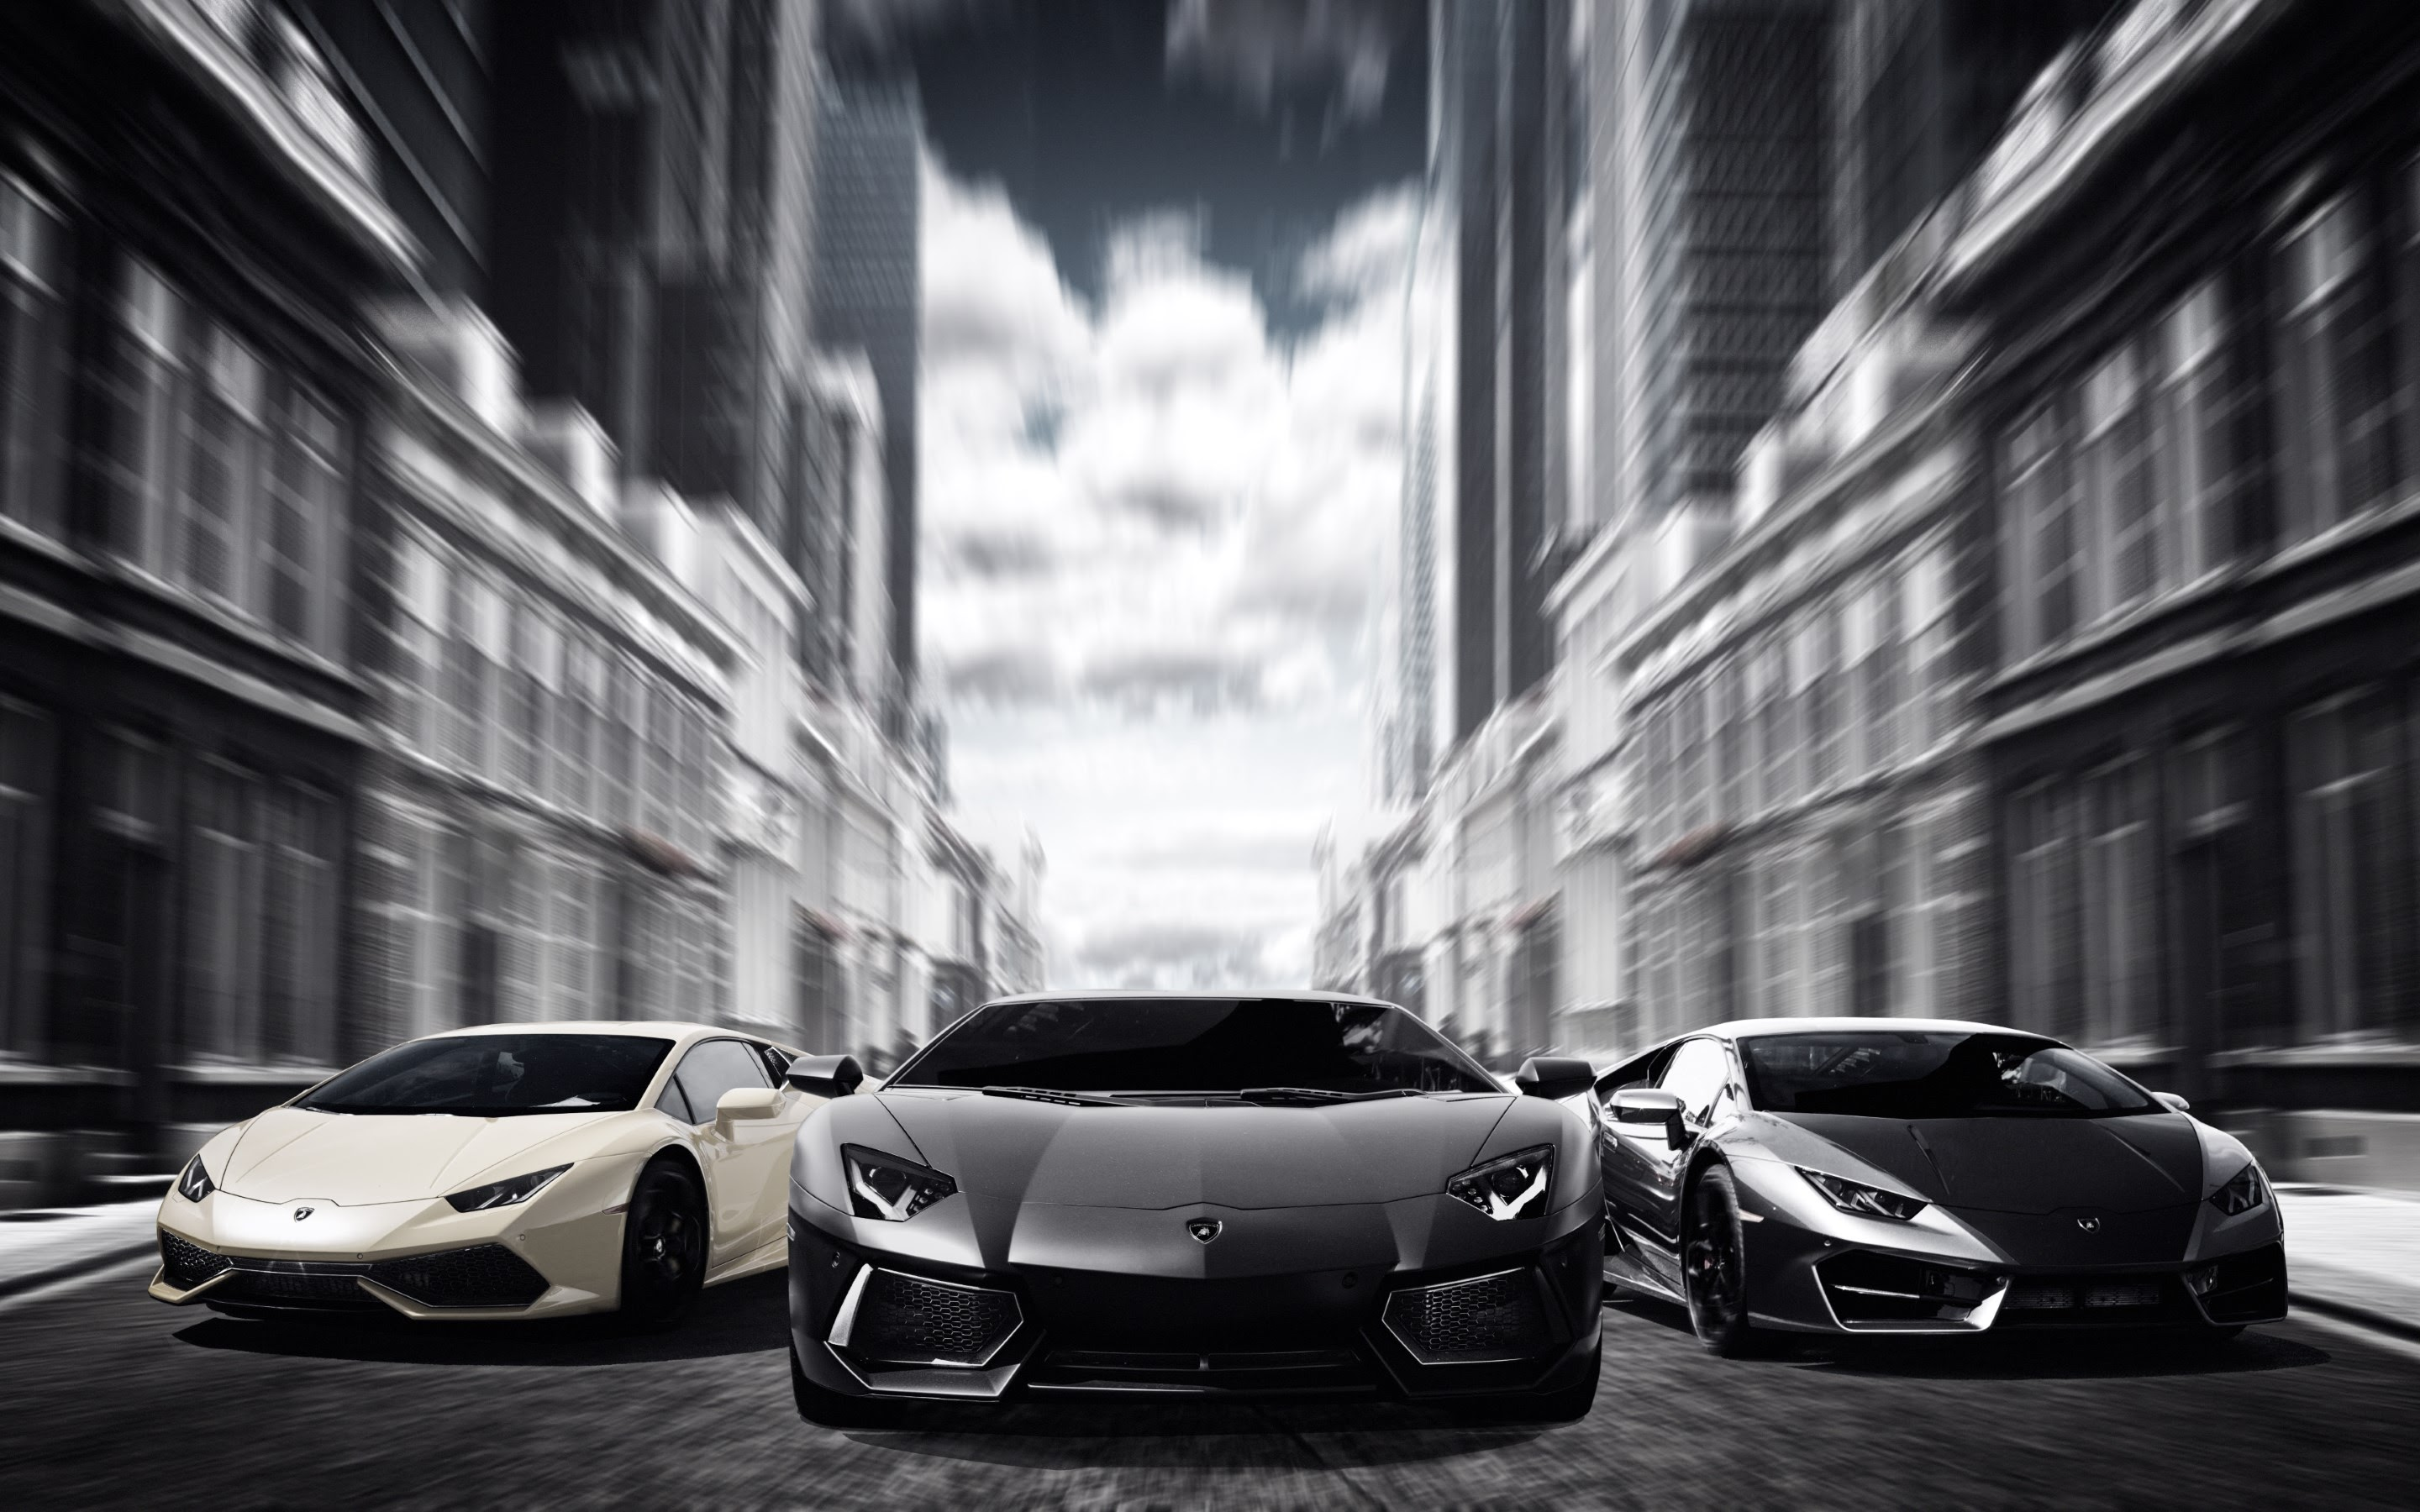 Image Result For Cars All Cars Wallpaper